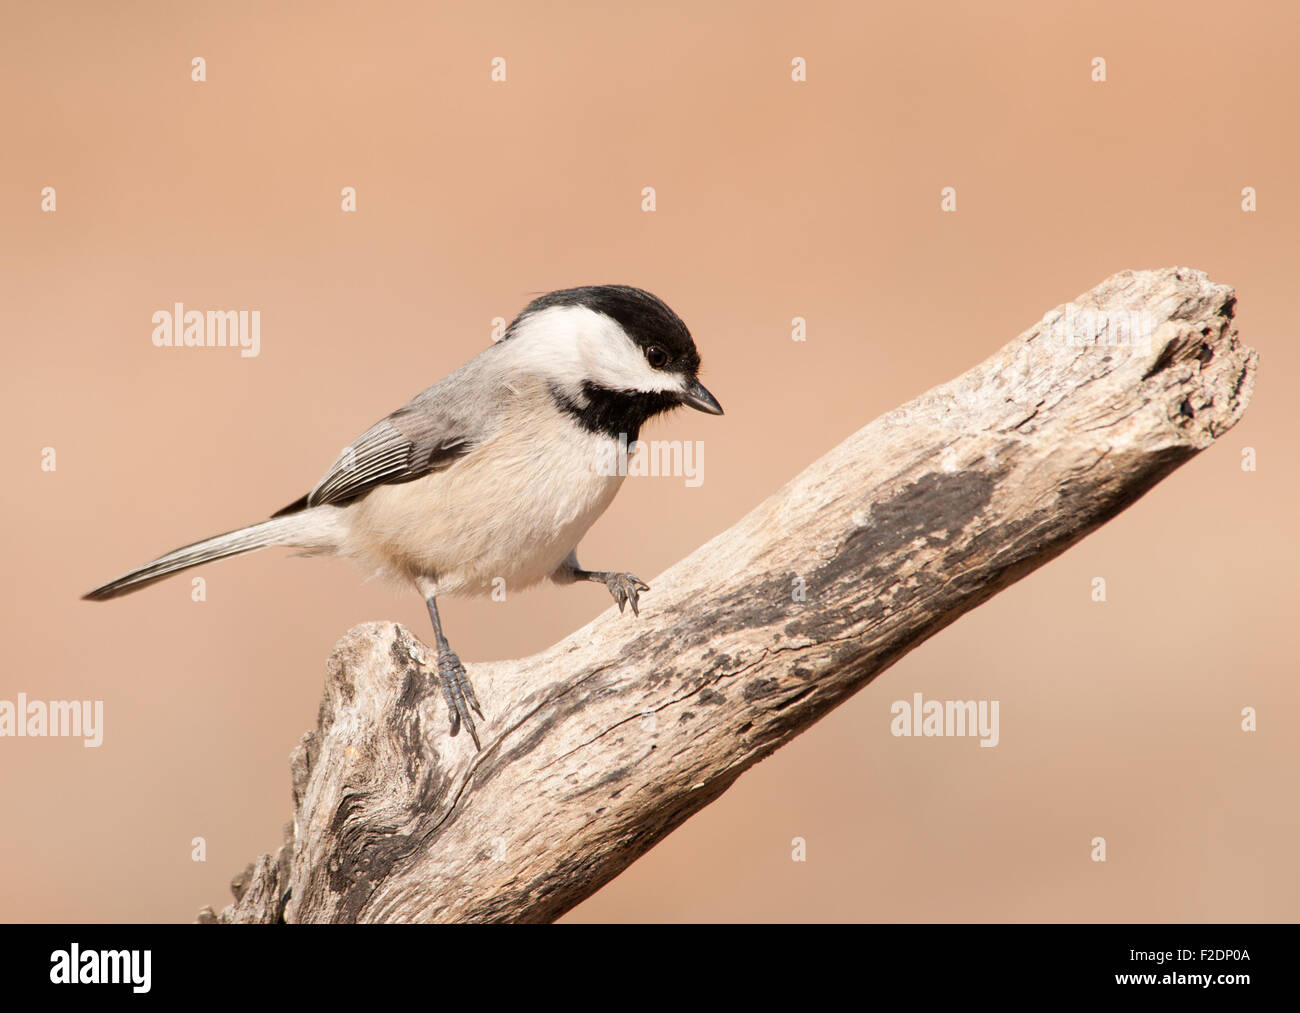 Carolina Chickadee on a dry limb against muted winter background - Stock Image